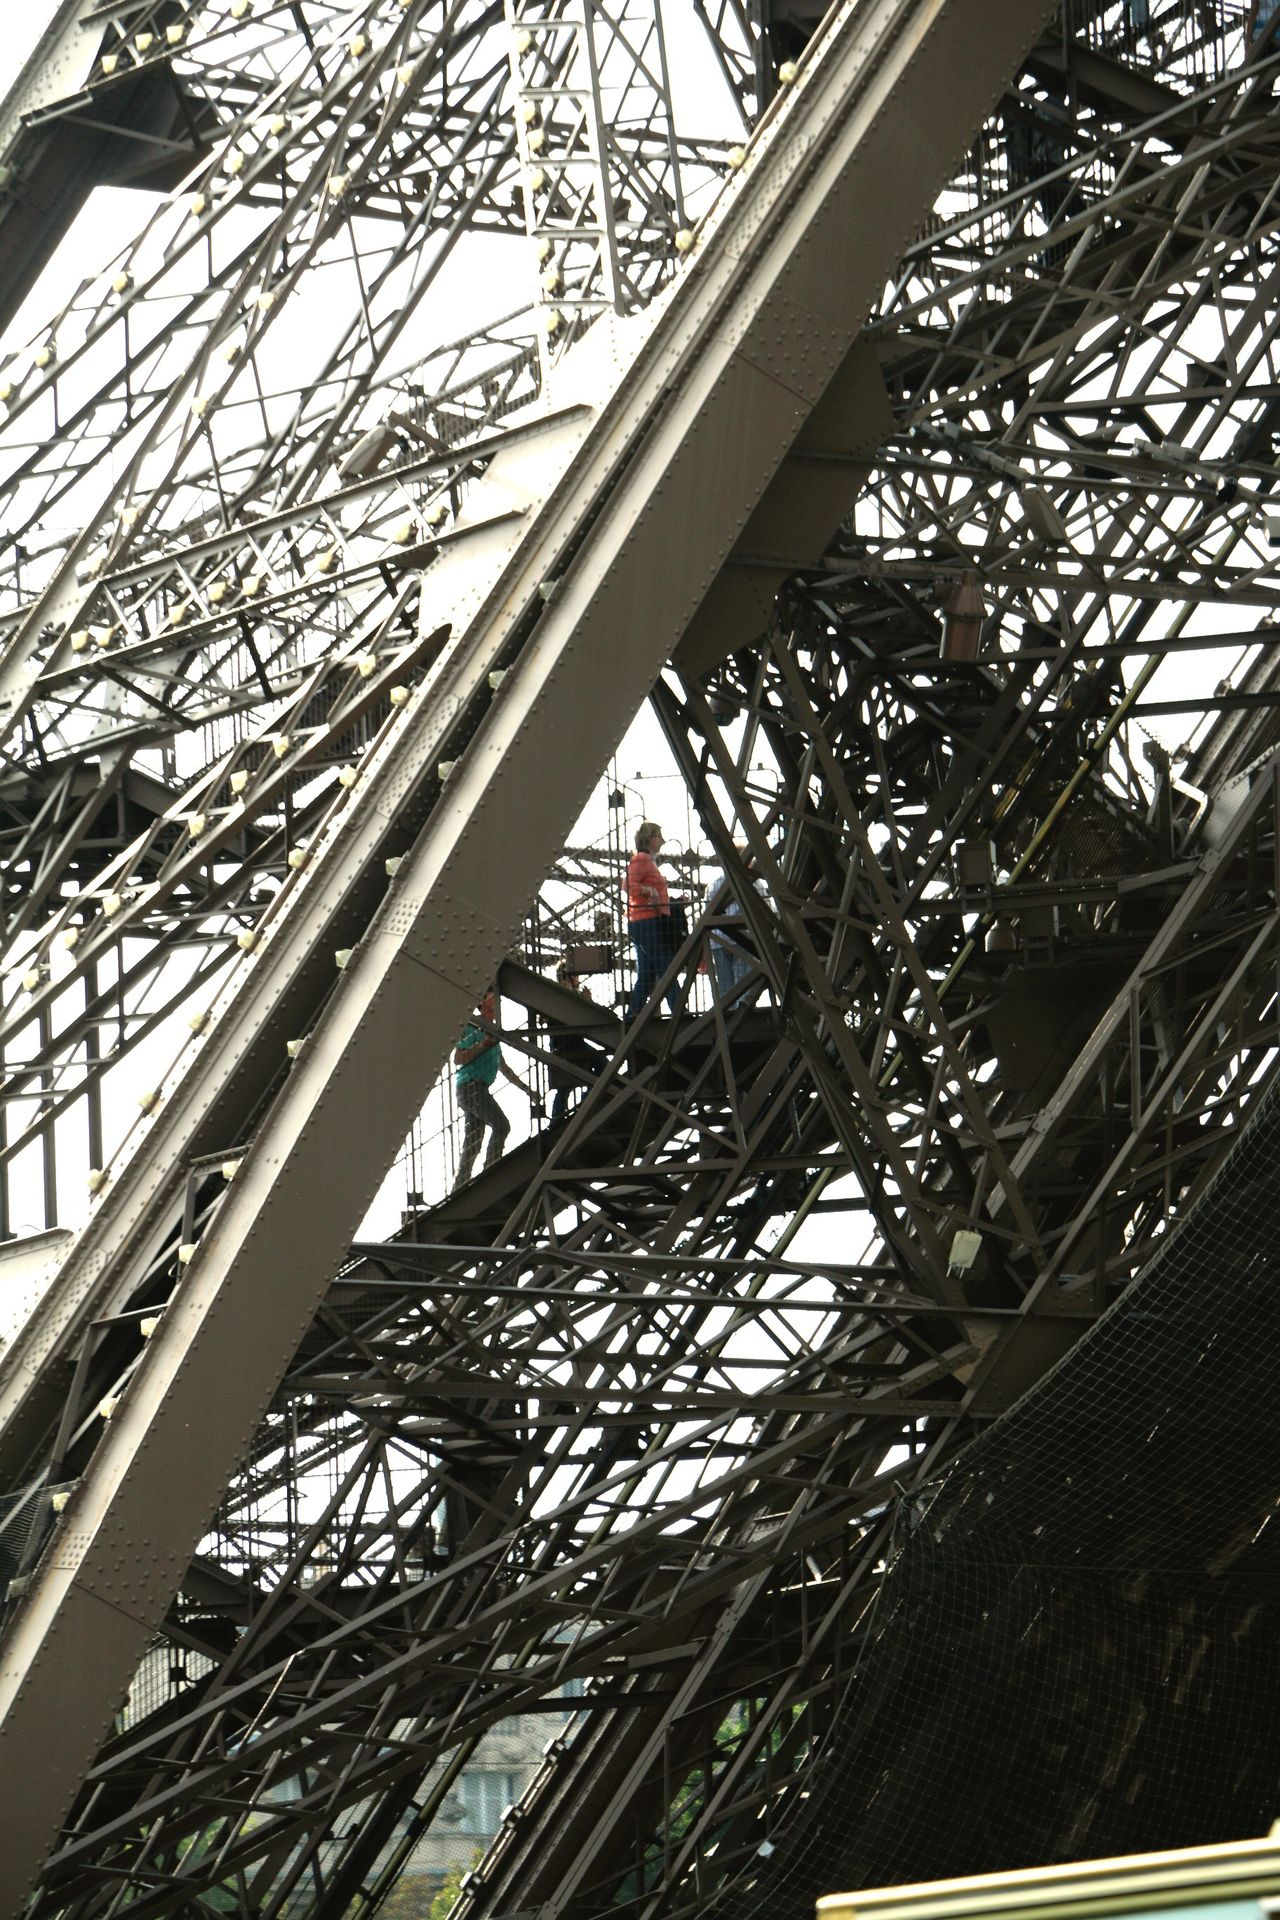 The Image Of Eiffel Tower Climbing Eiffel Tower The Eiffel Tower Made Of Iron Design